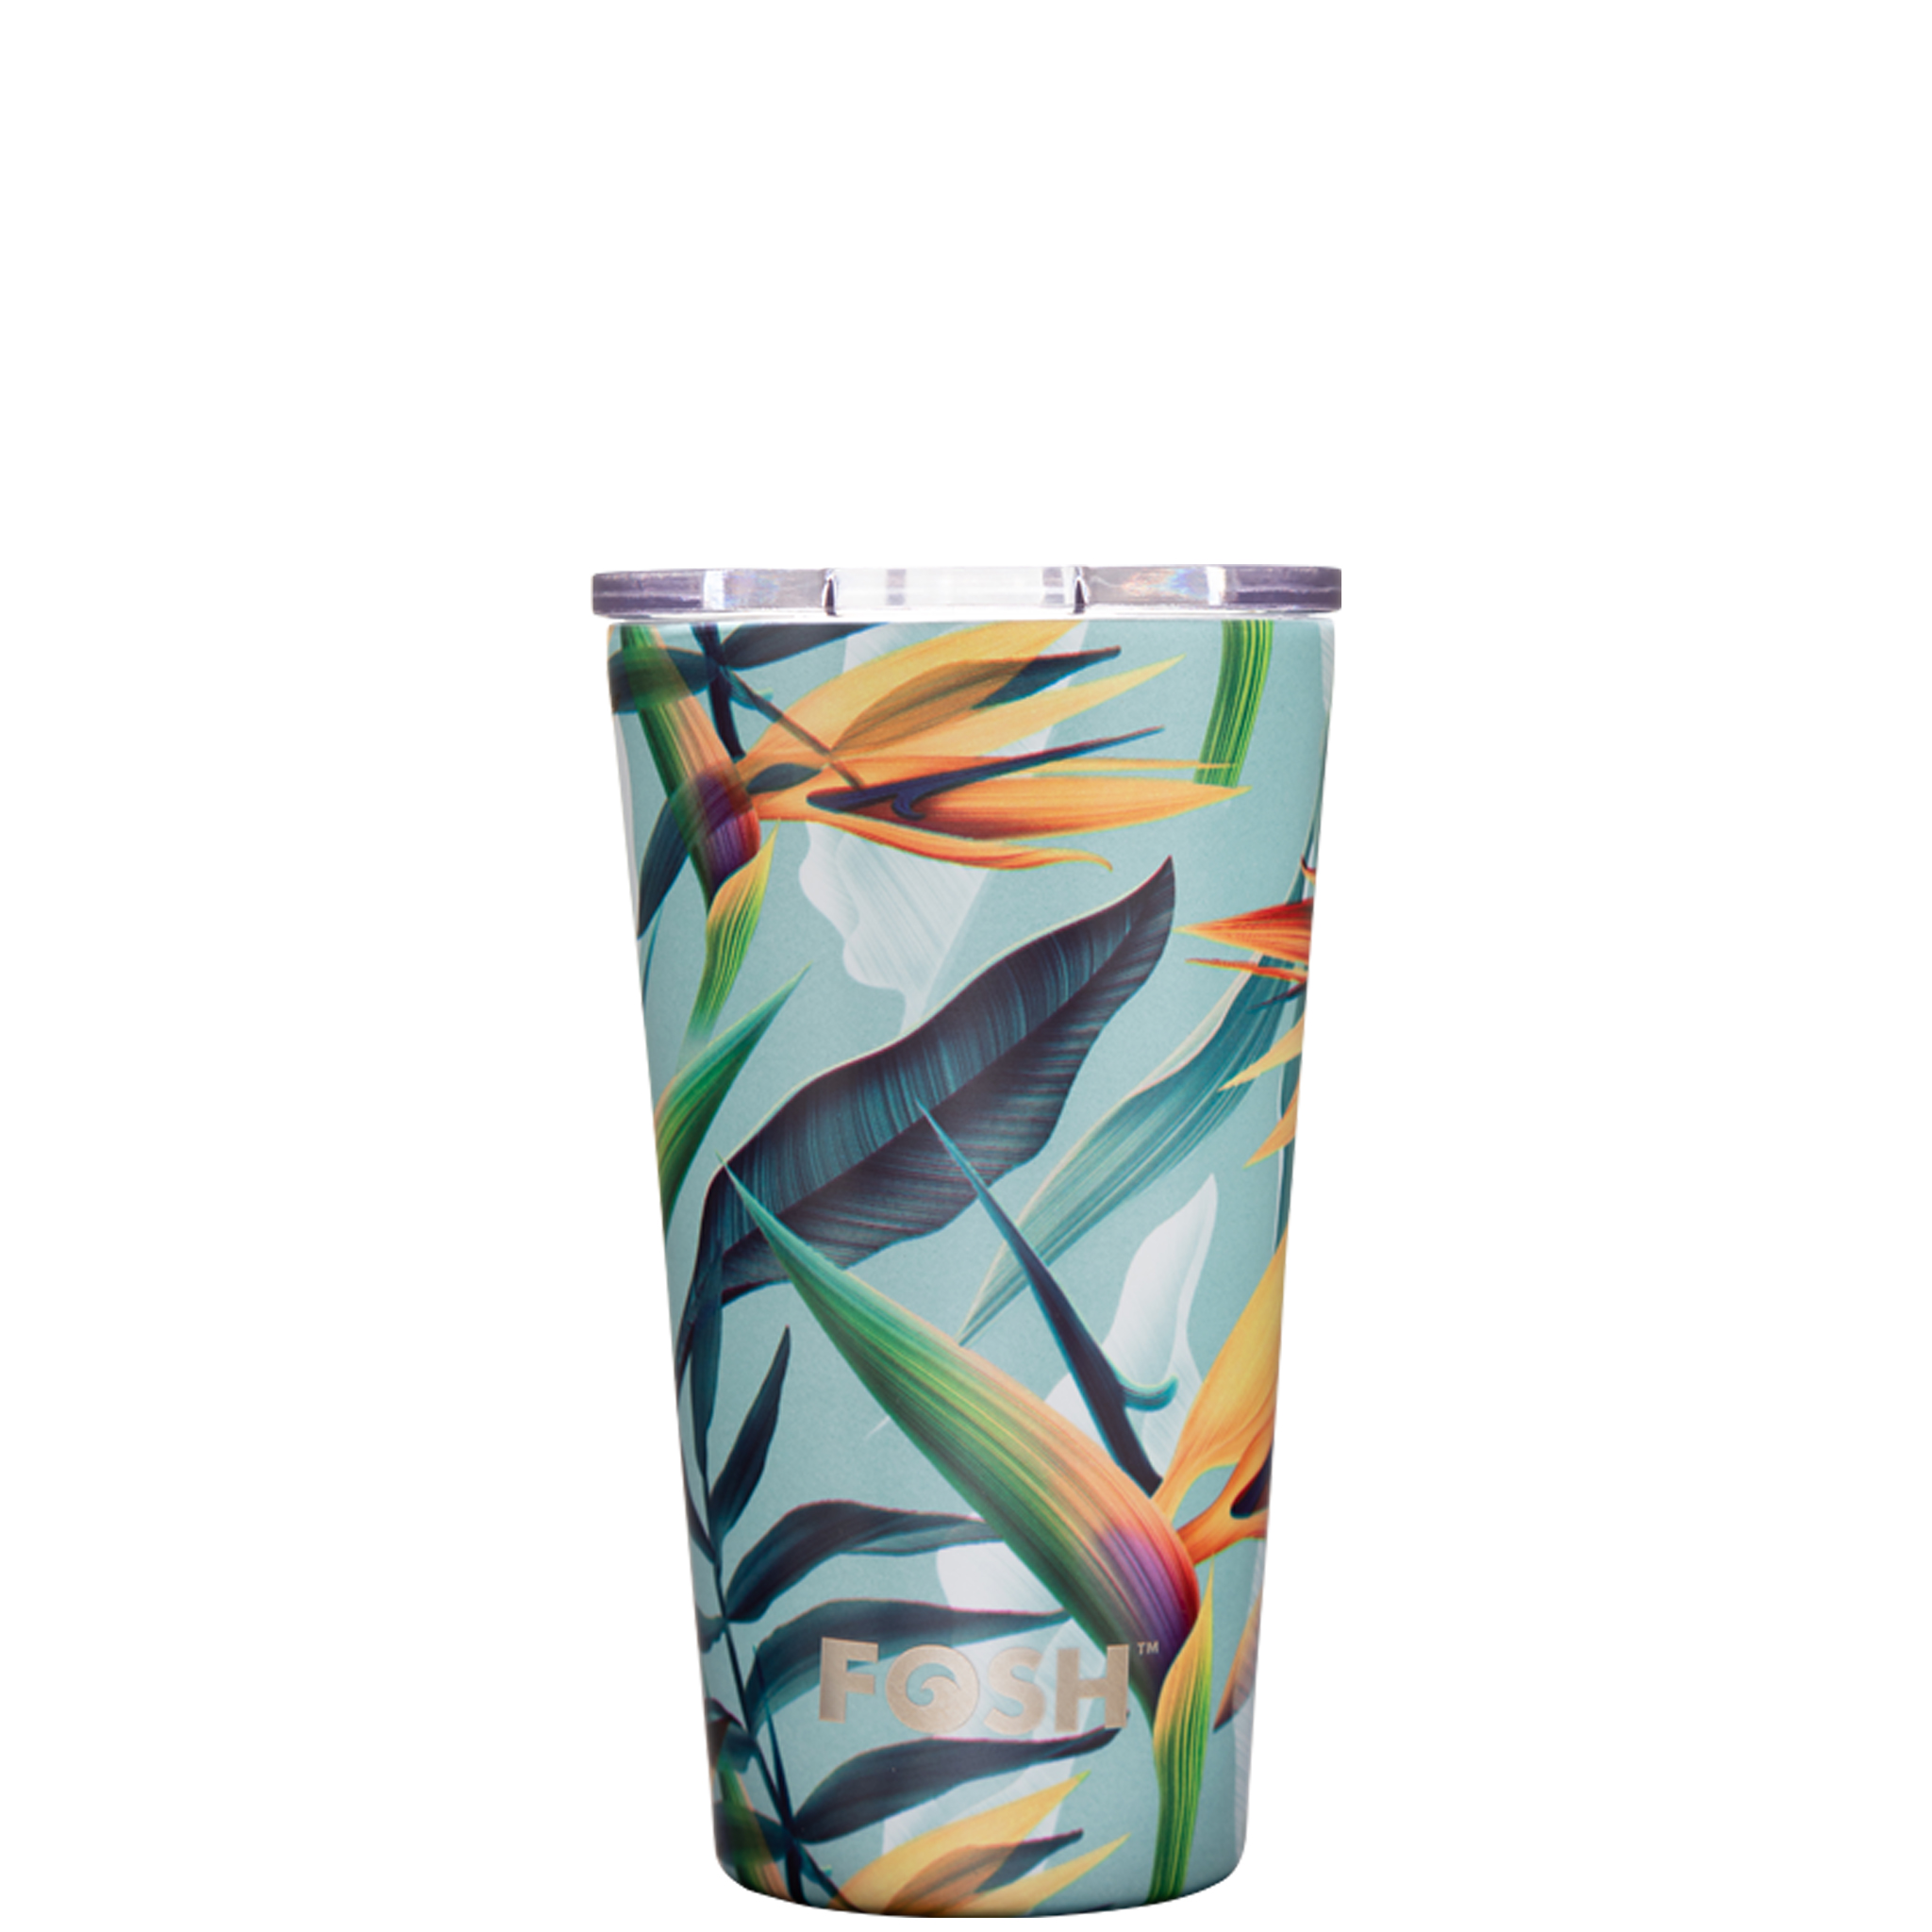 Stainless steel insulated coffee cup - Social paradise